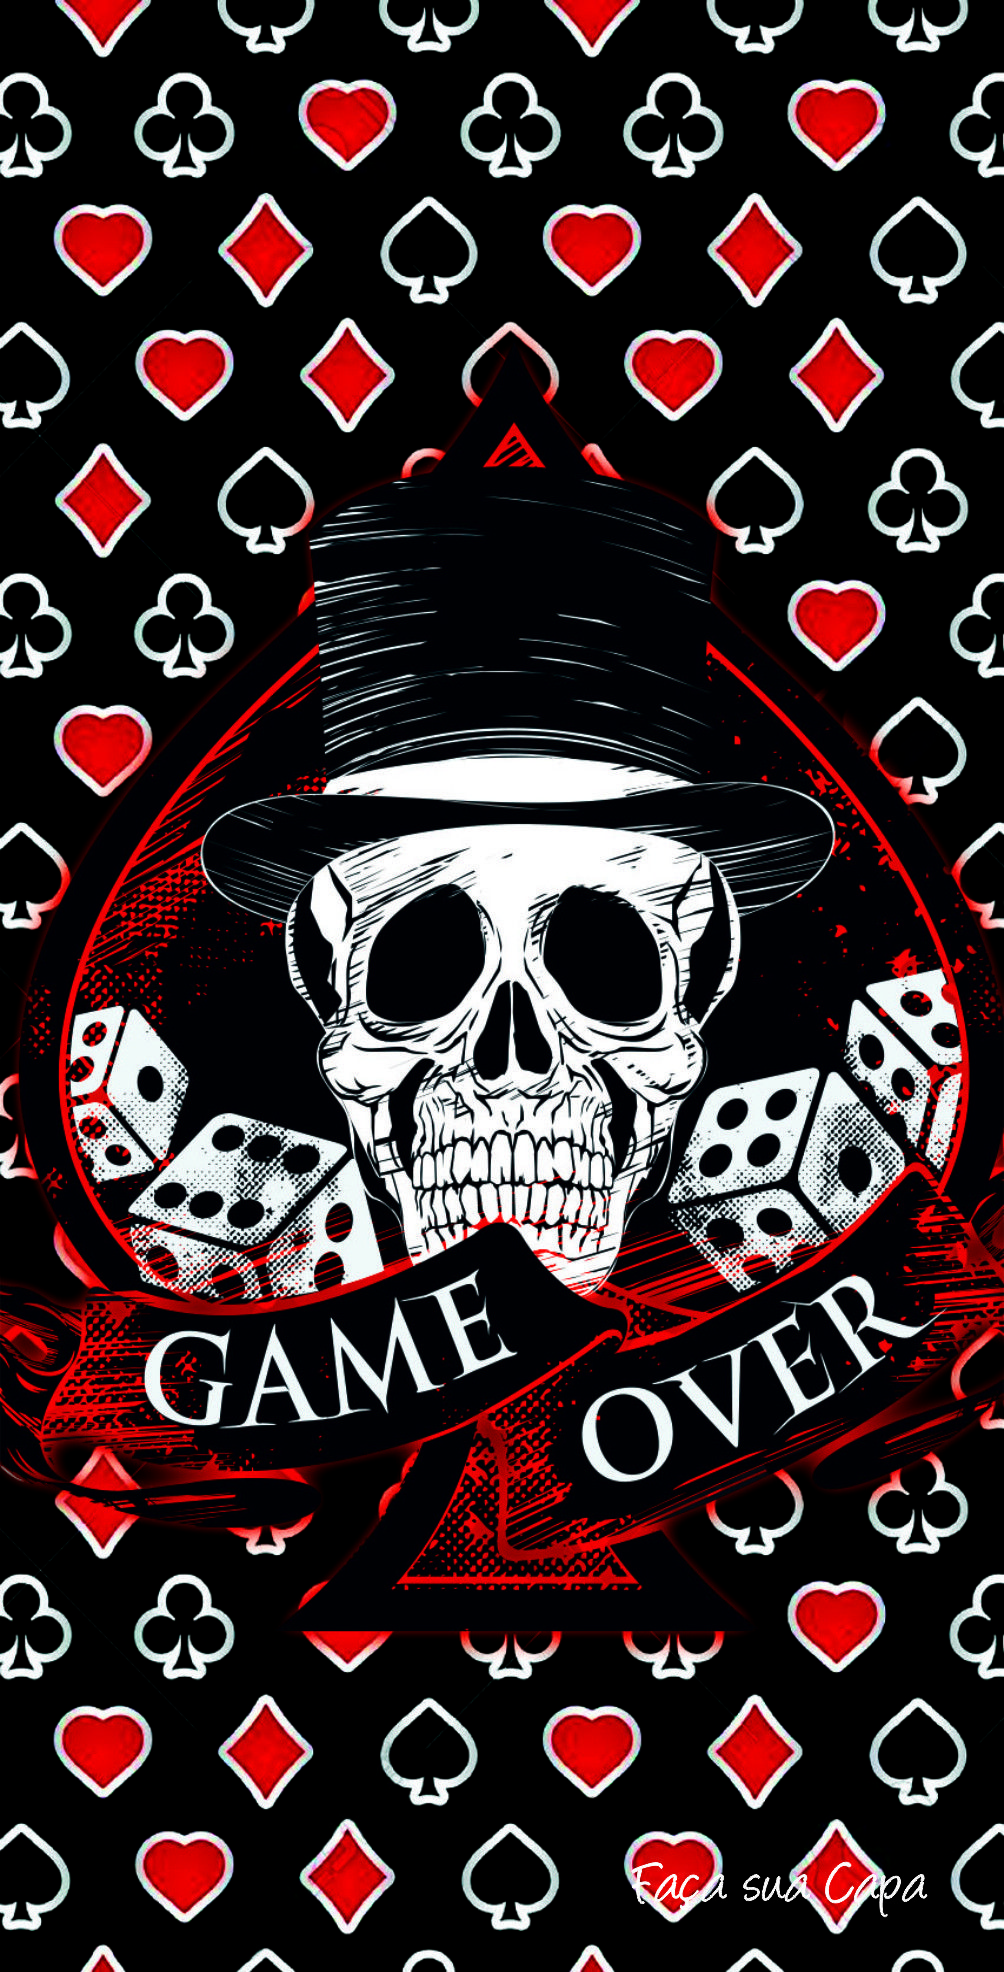 GAME OVER | Cool | Pinterest | Wallpaper, Skull wallpaper and Iphone wallpaper